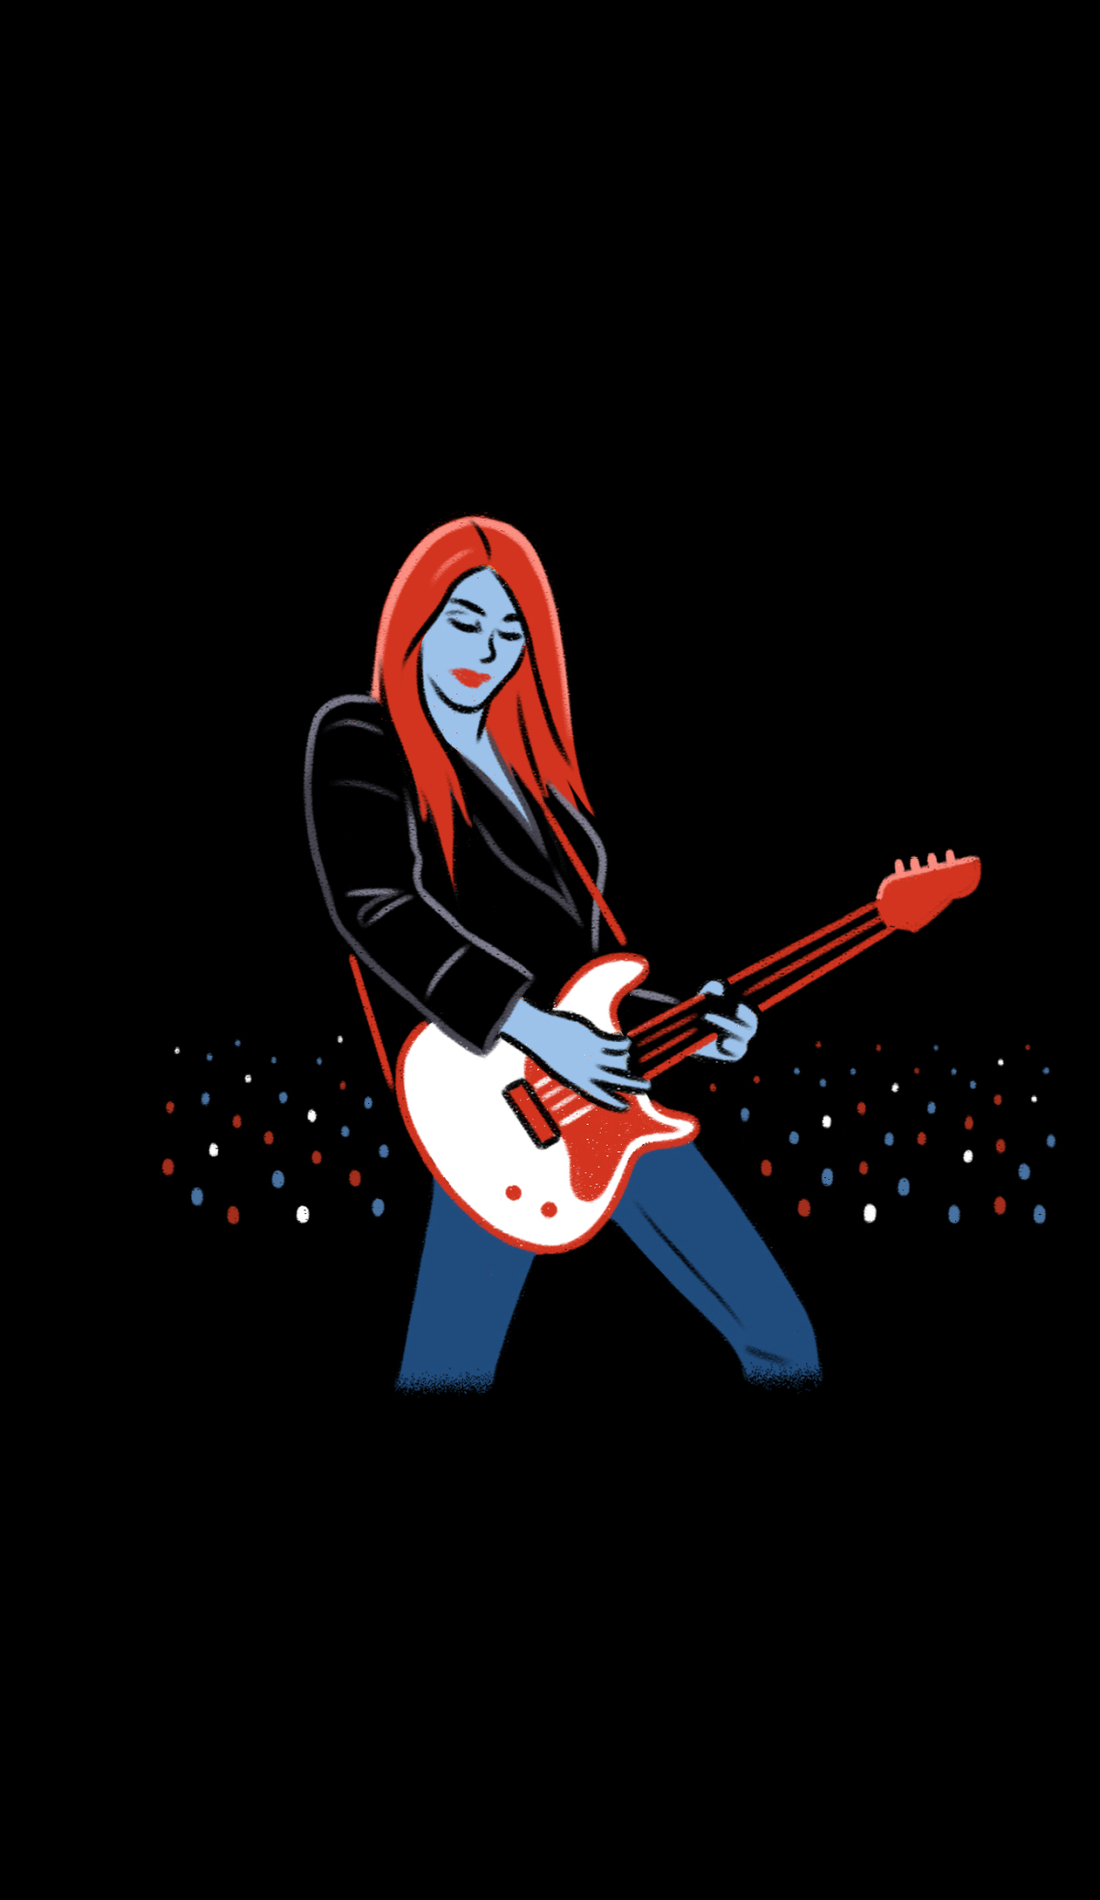 A Drum Corps International - DCI live event